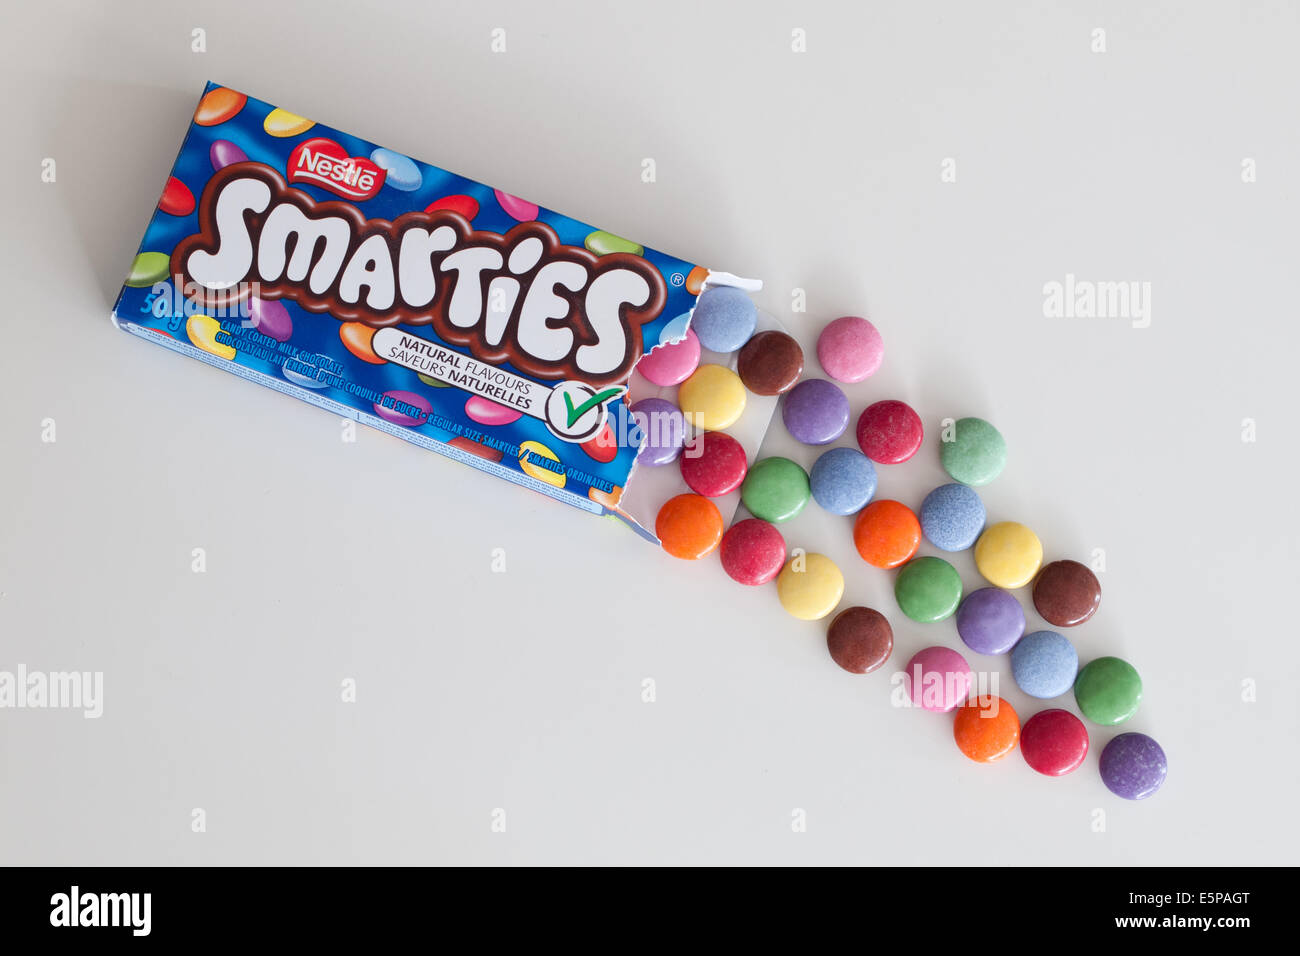 A box of colourful Smarties candy, manufactured by Nestlé